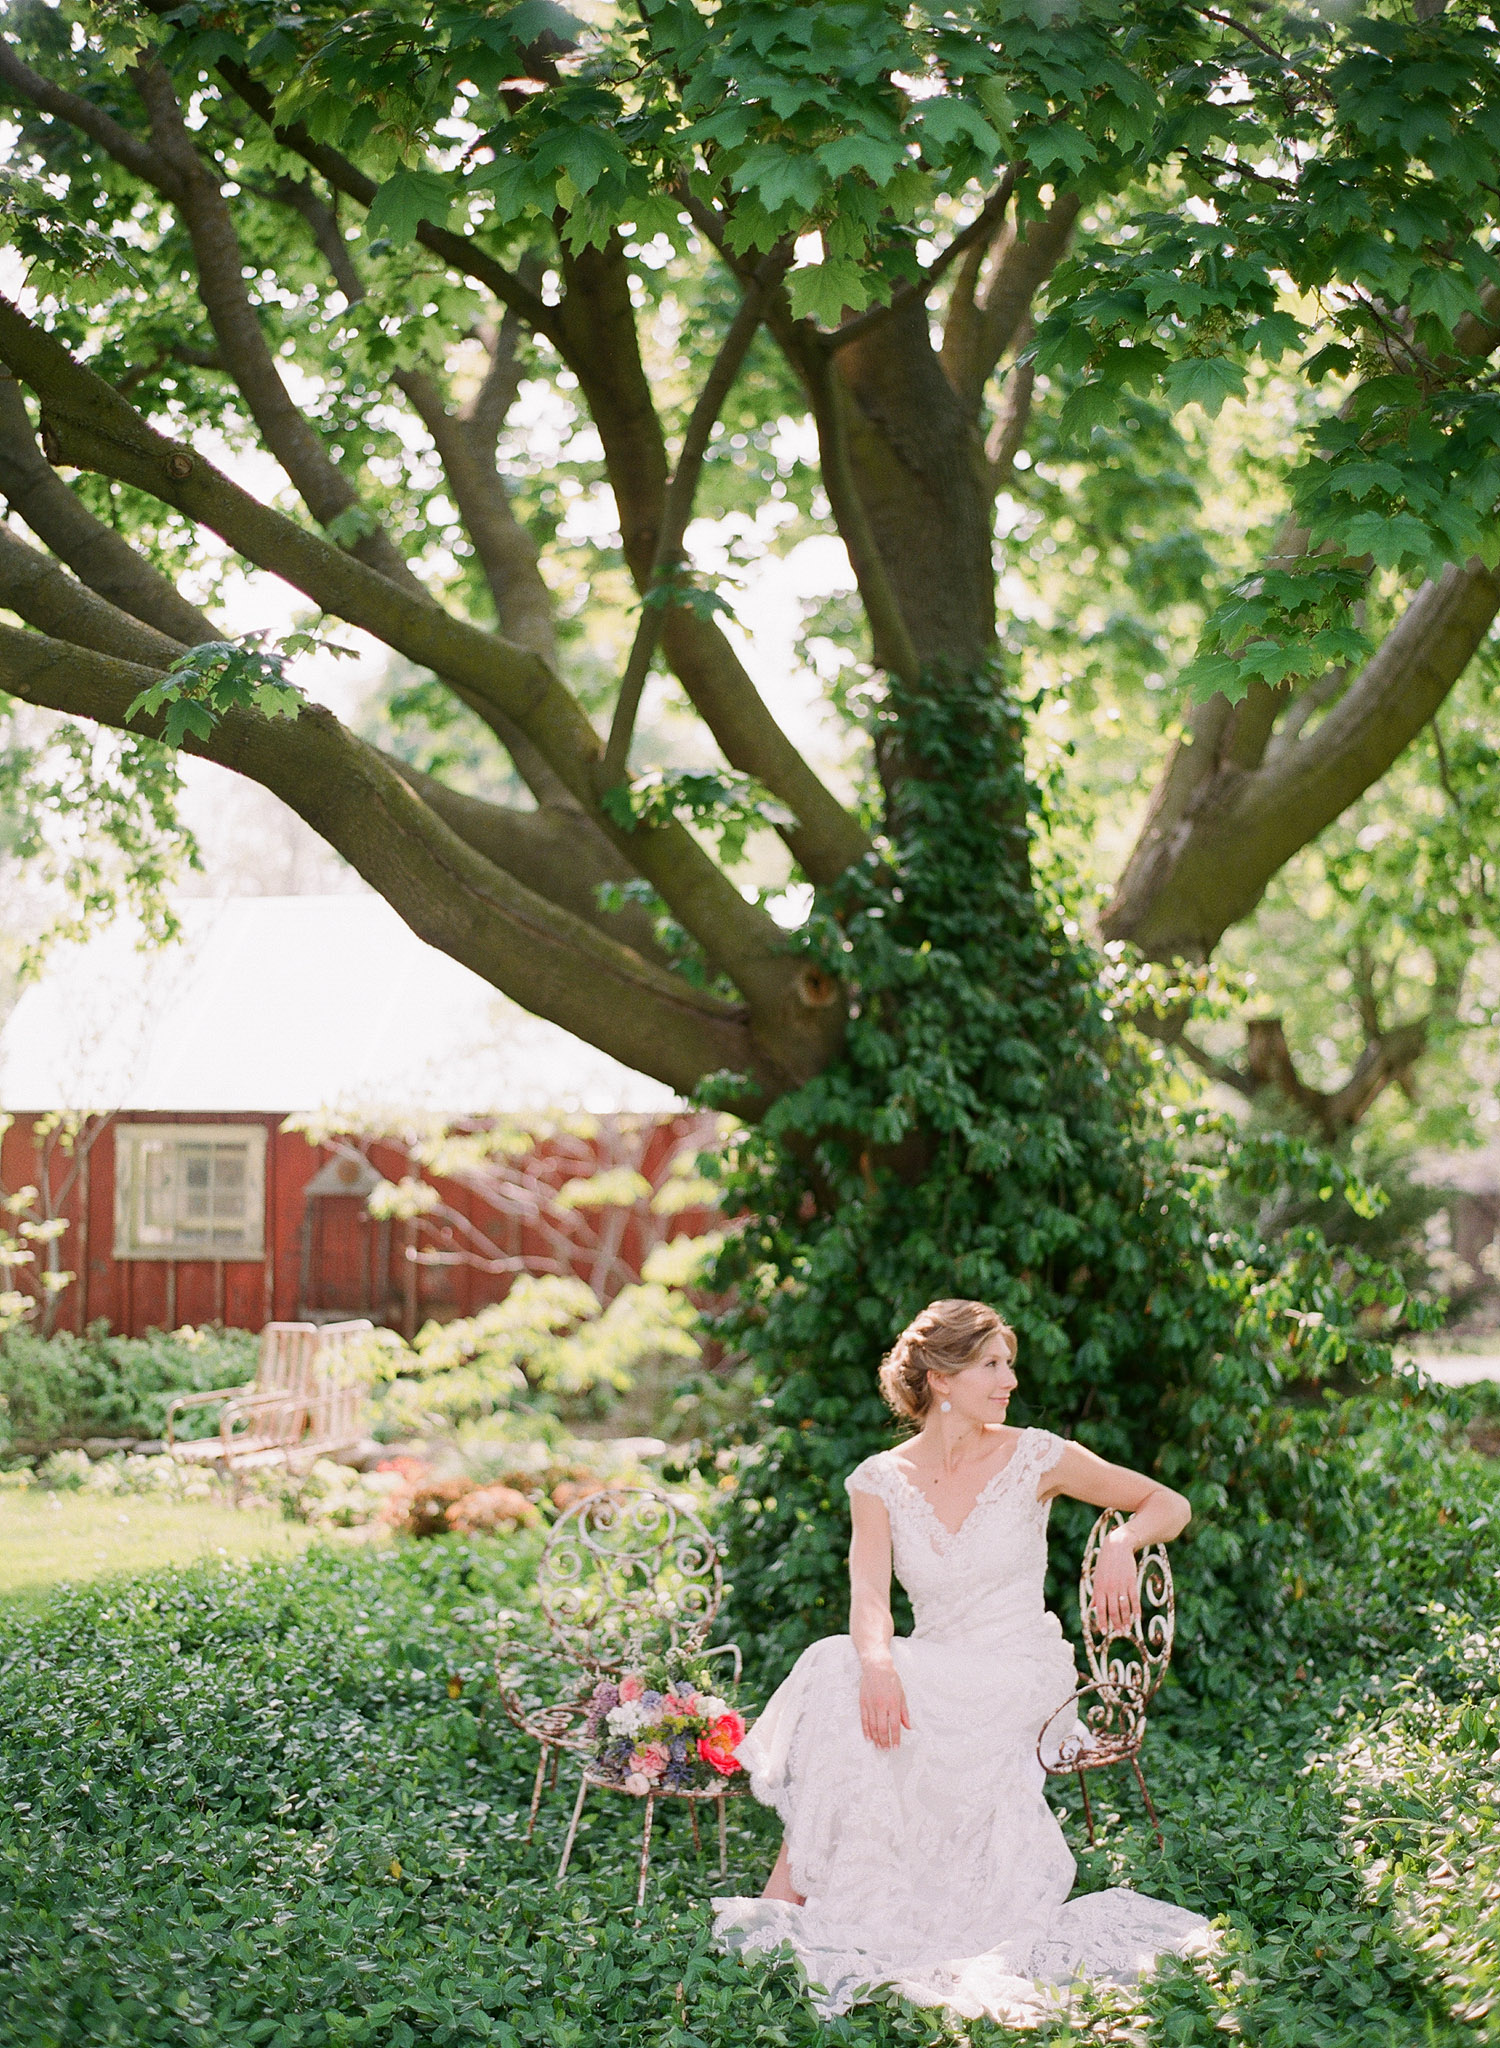 bride sits on a vintage wrought iron chair in ivy under a tree at this springtime wedding at Northwind Perennial Garden - a beautiful wisconsin wedding venue - while Destination wedding photographer Lexia Frank Photographs this wedding on film